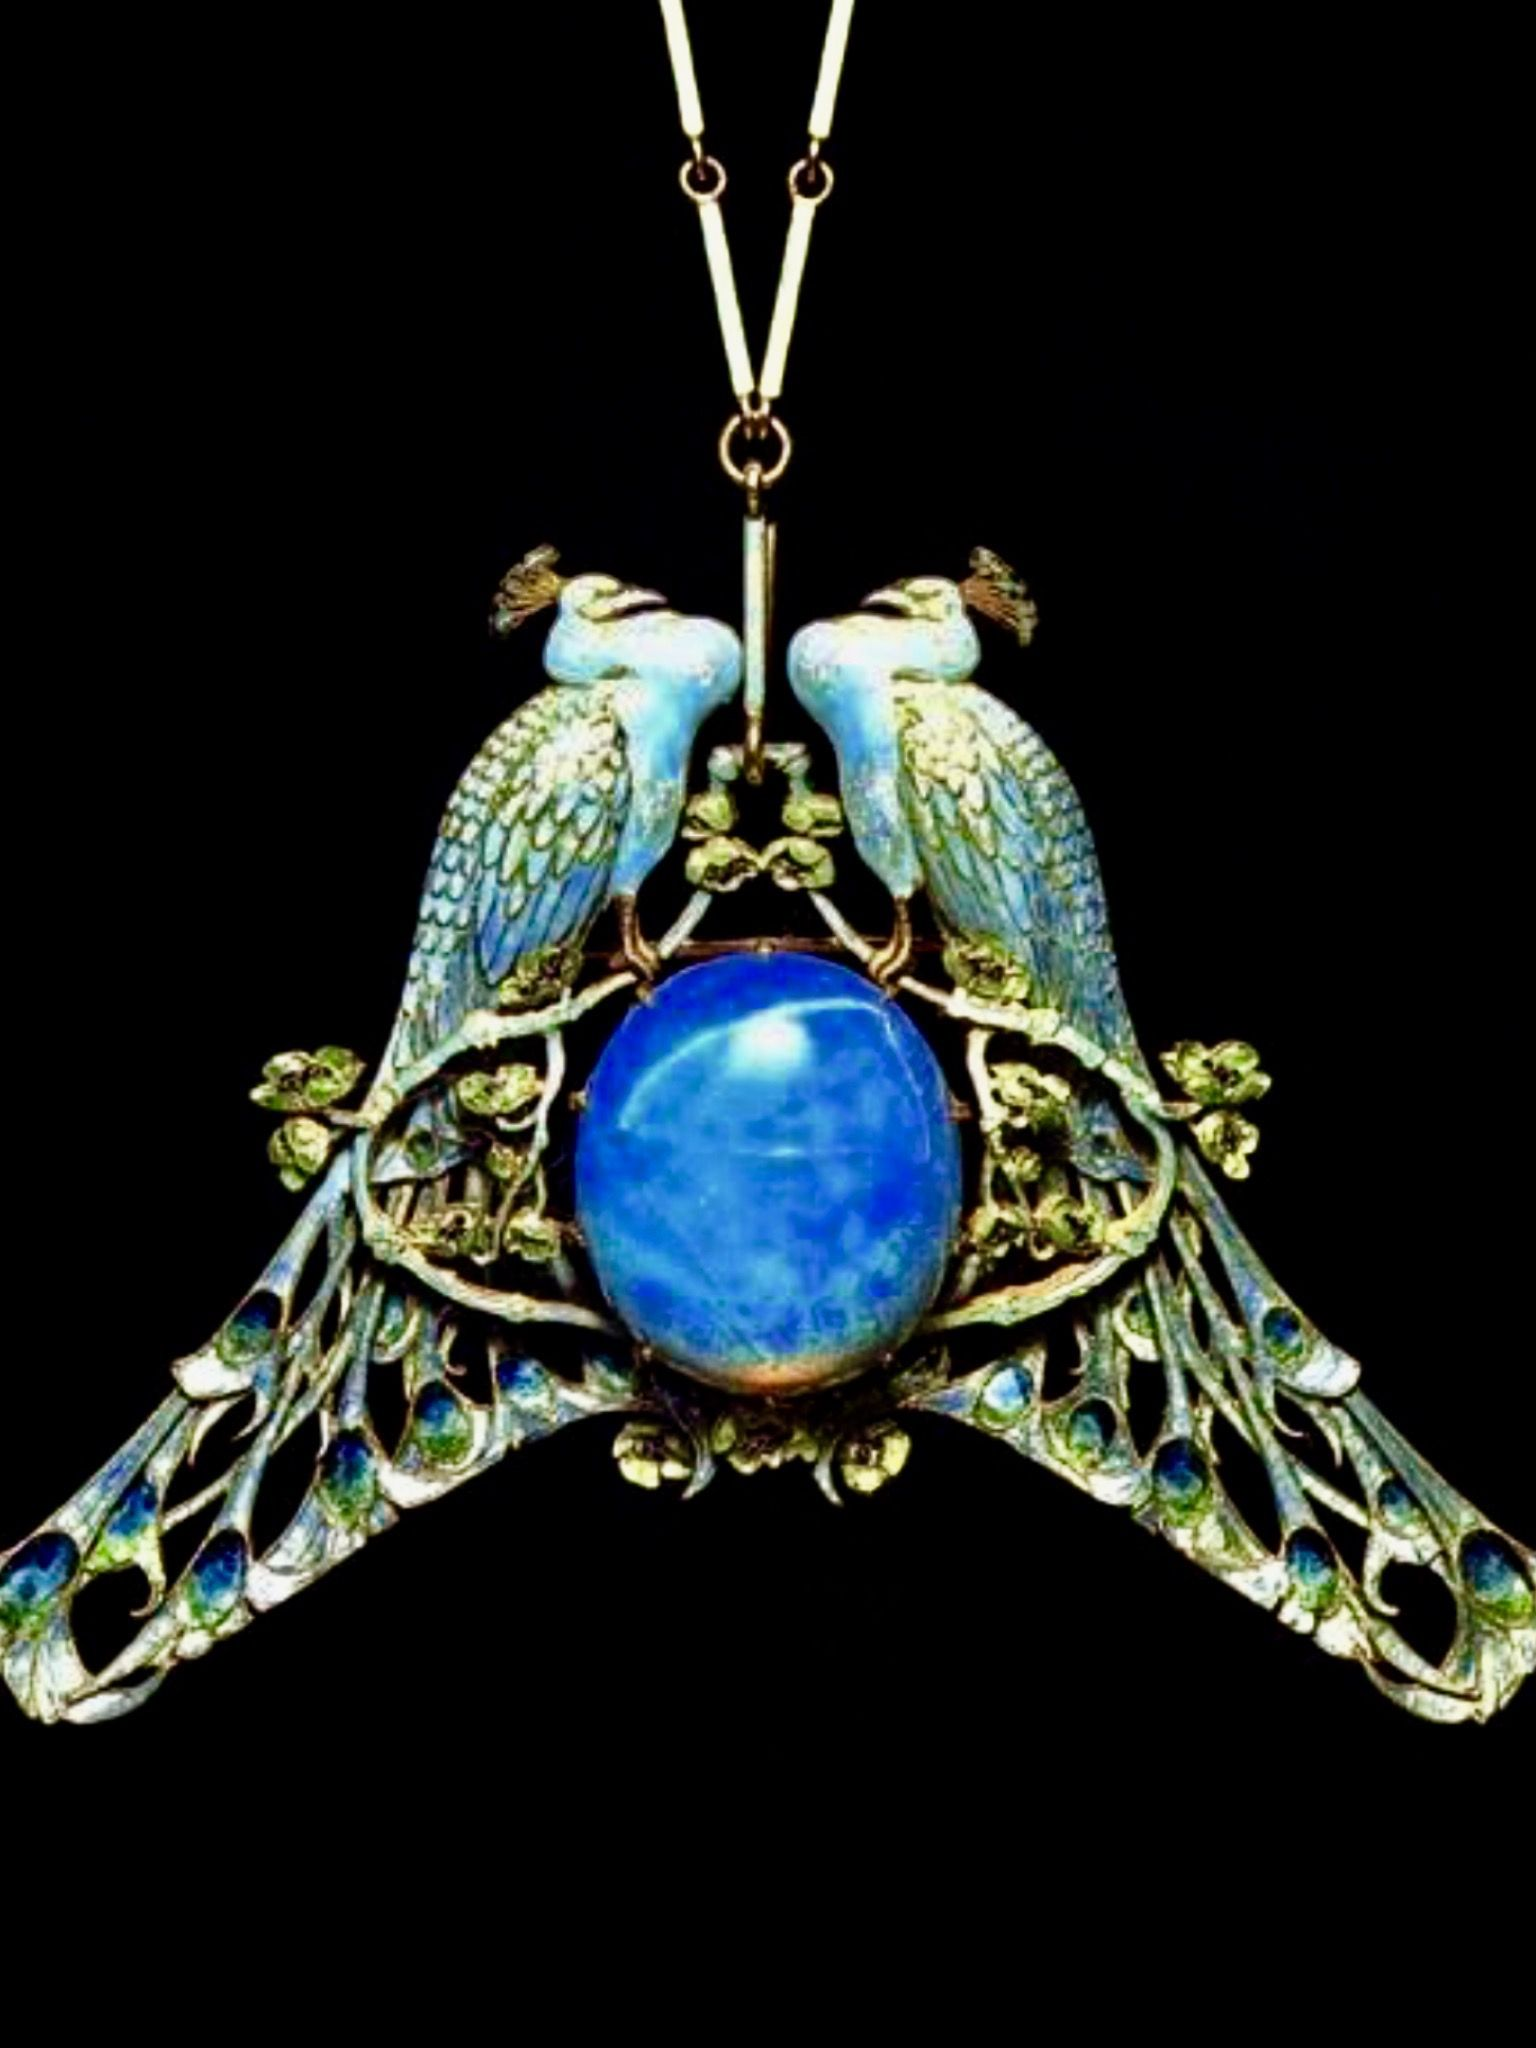 art nouveau jewellery peacock pendant jewellery Art Nouveau peacock necklace